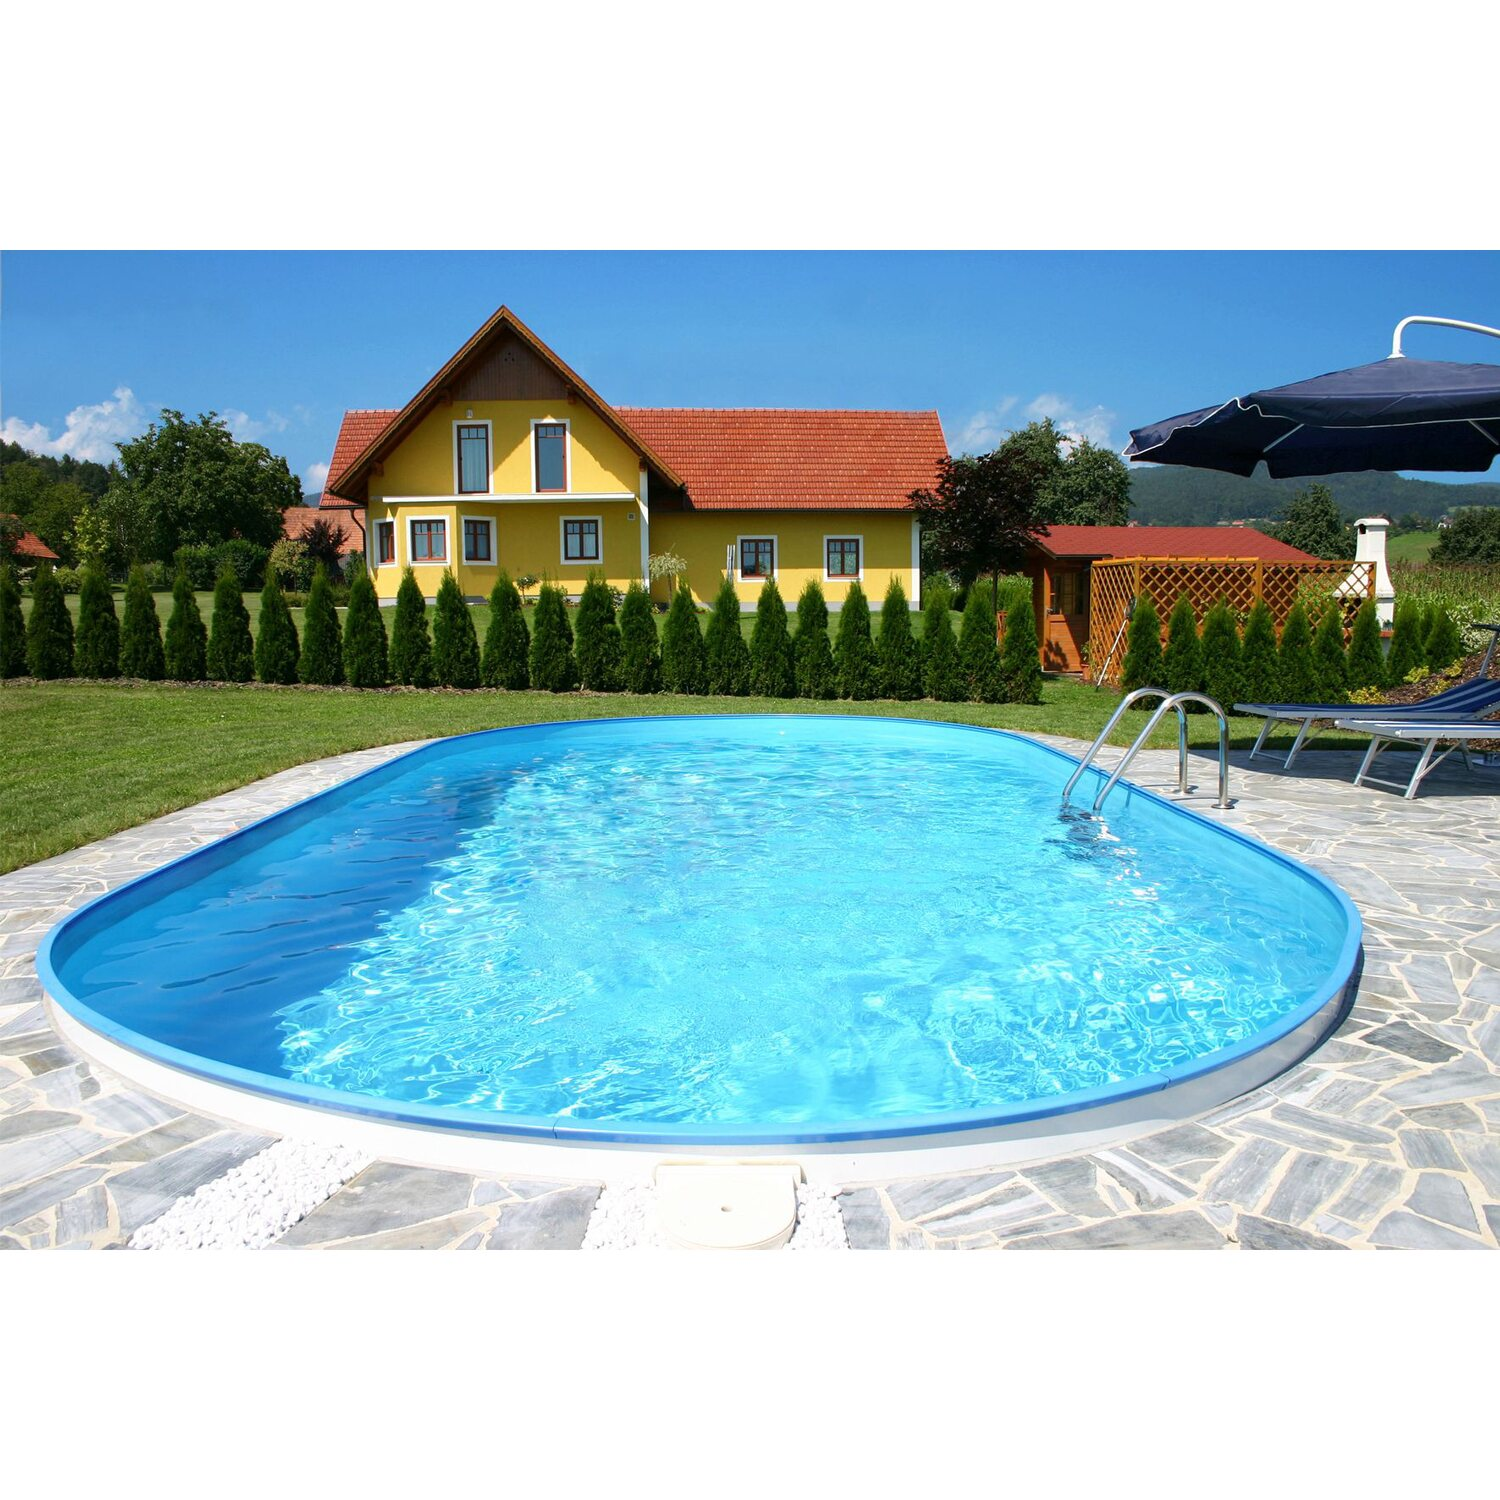 Stahlwand pool set faro einbaubecken ovalform 600 cm x 320 for Obi pool set